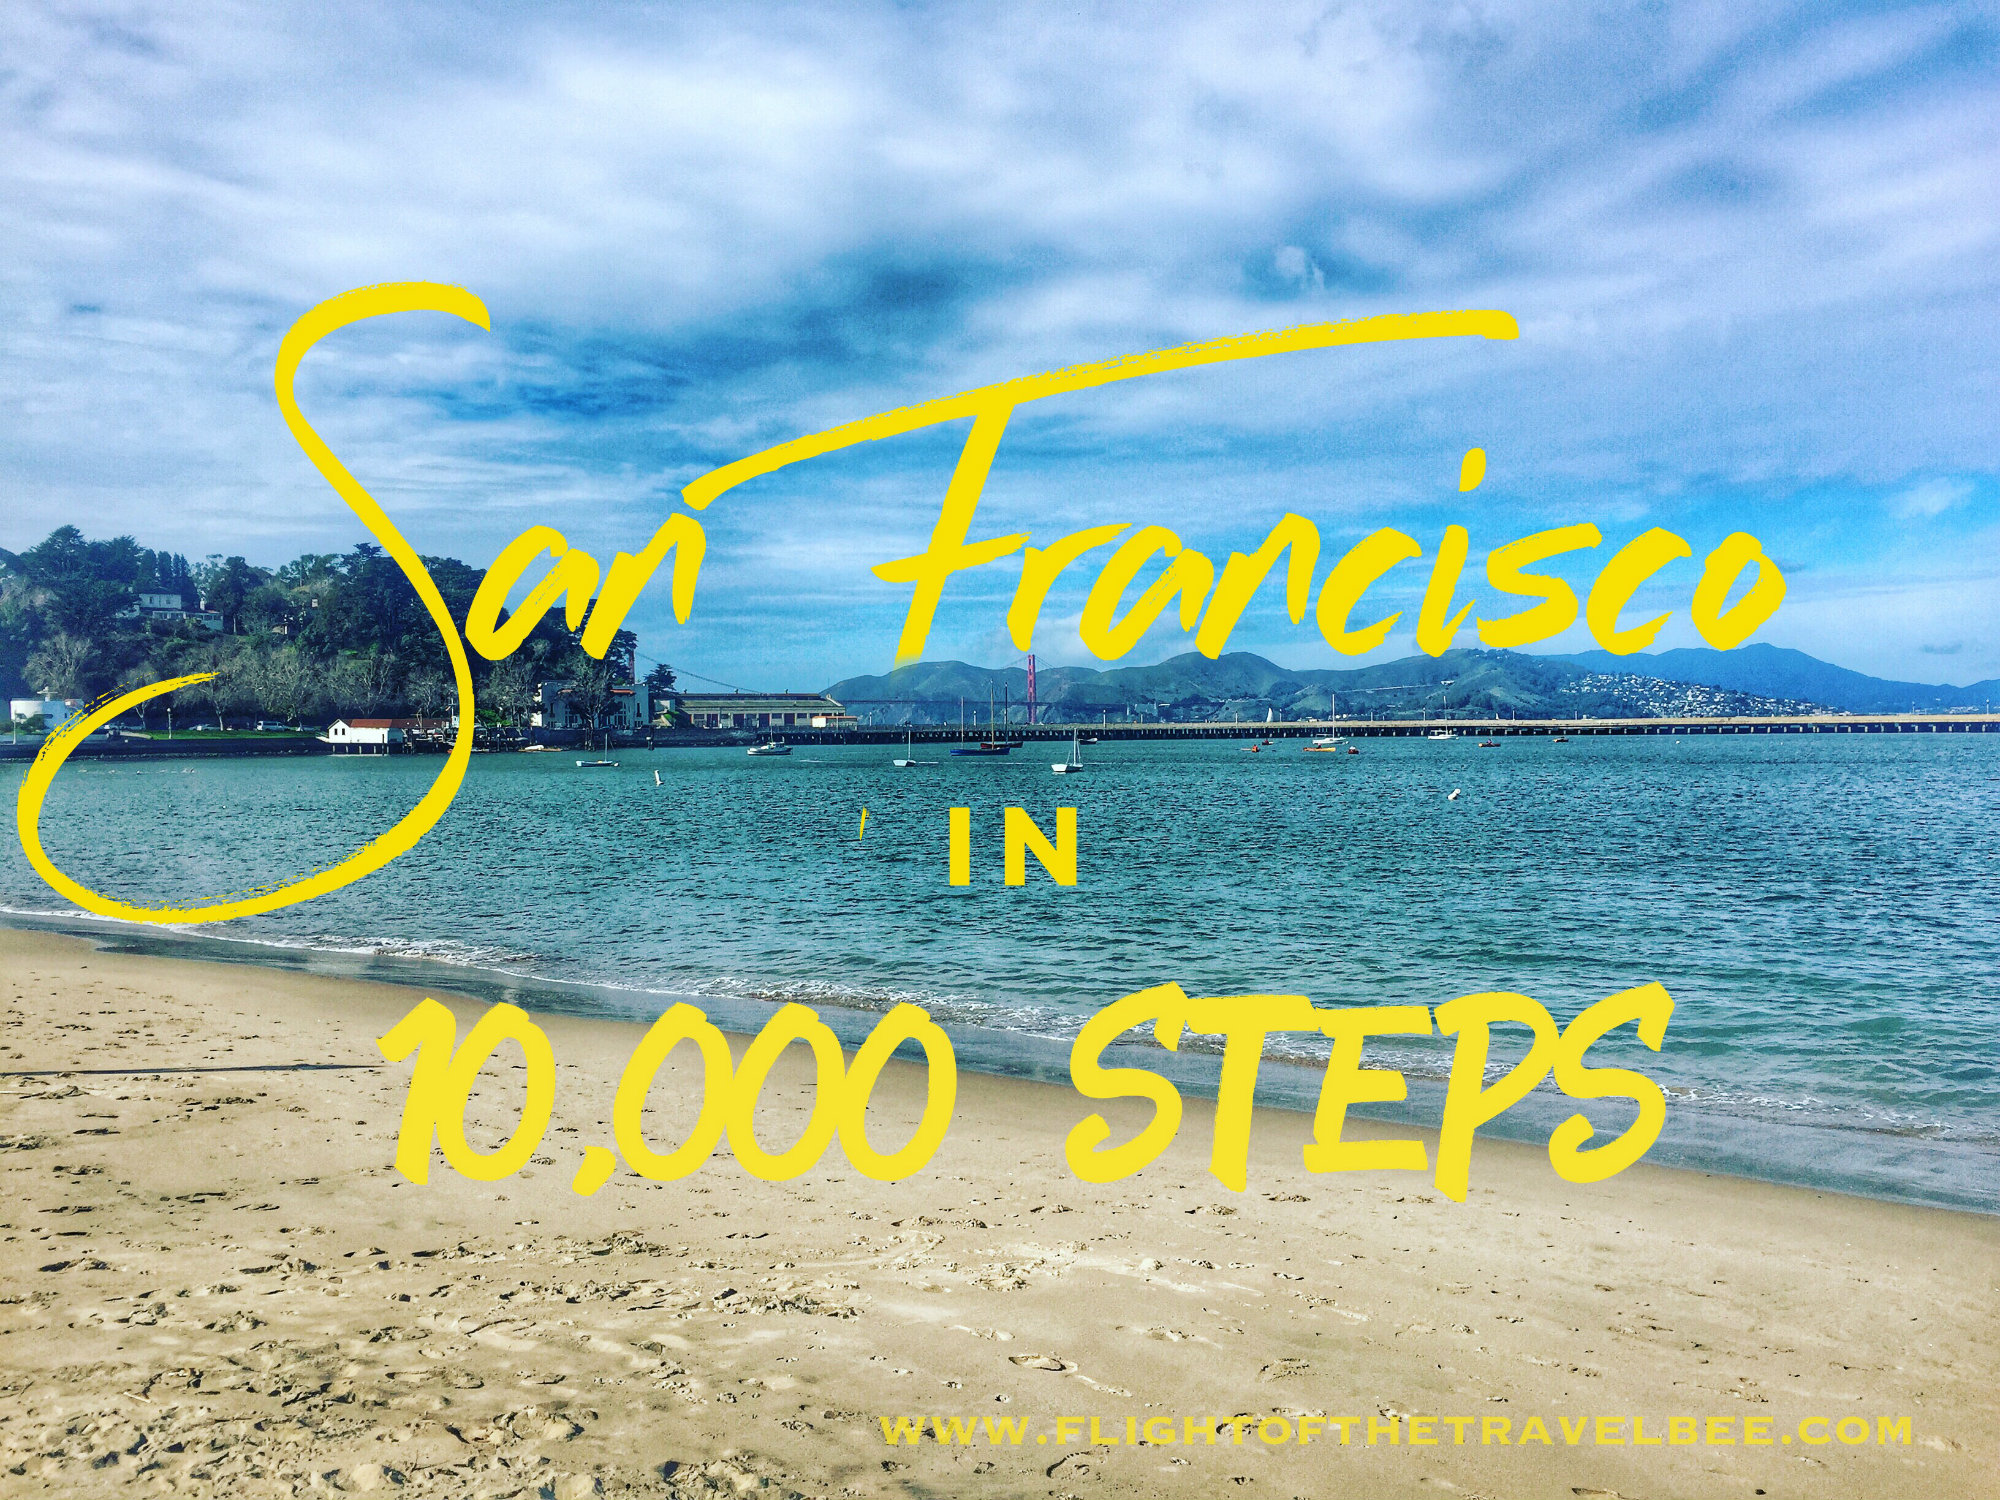 San Francisco in 10,000 Steps